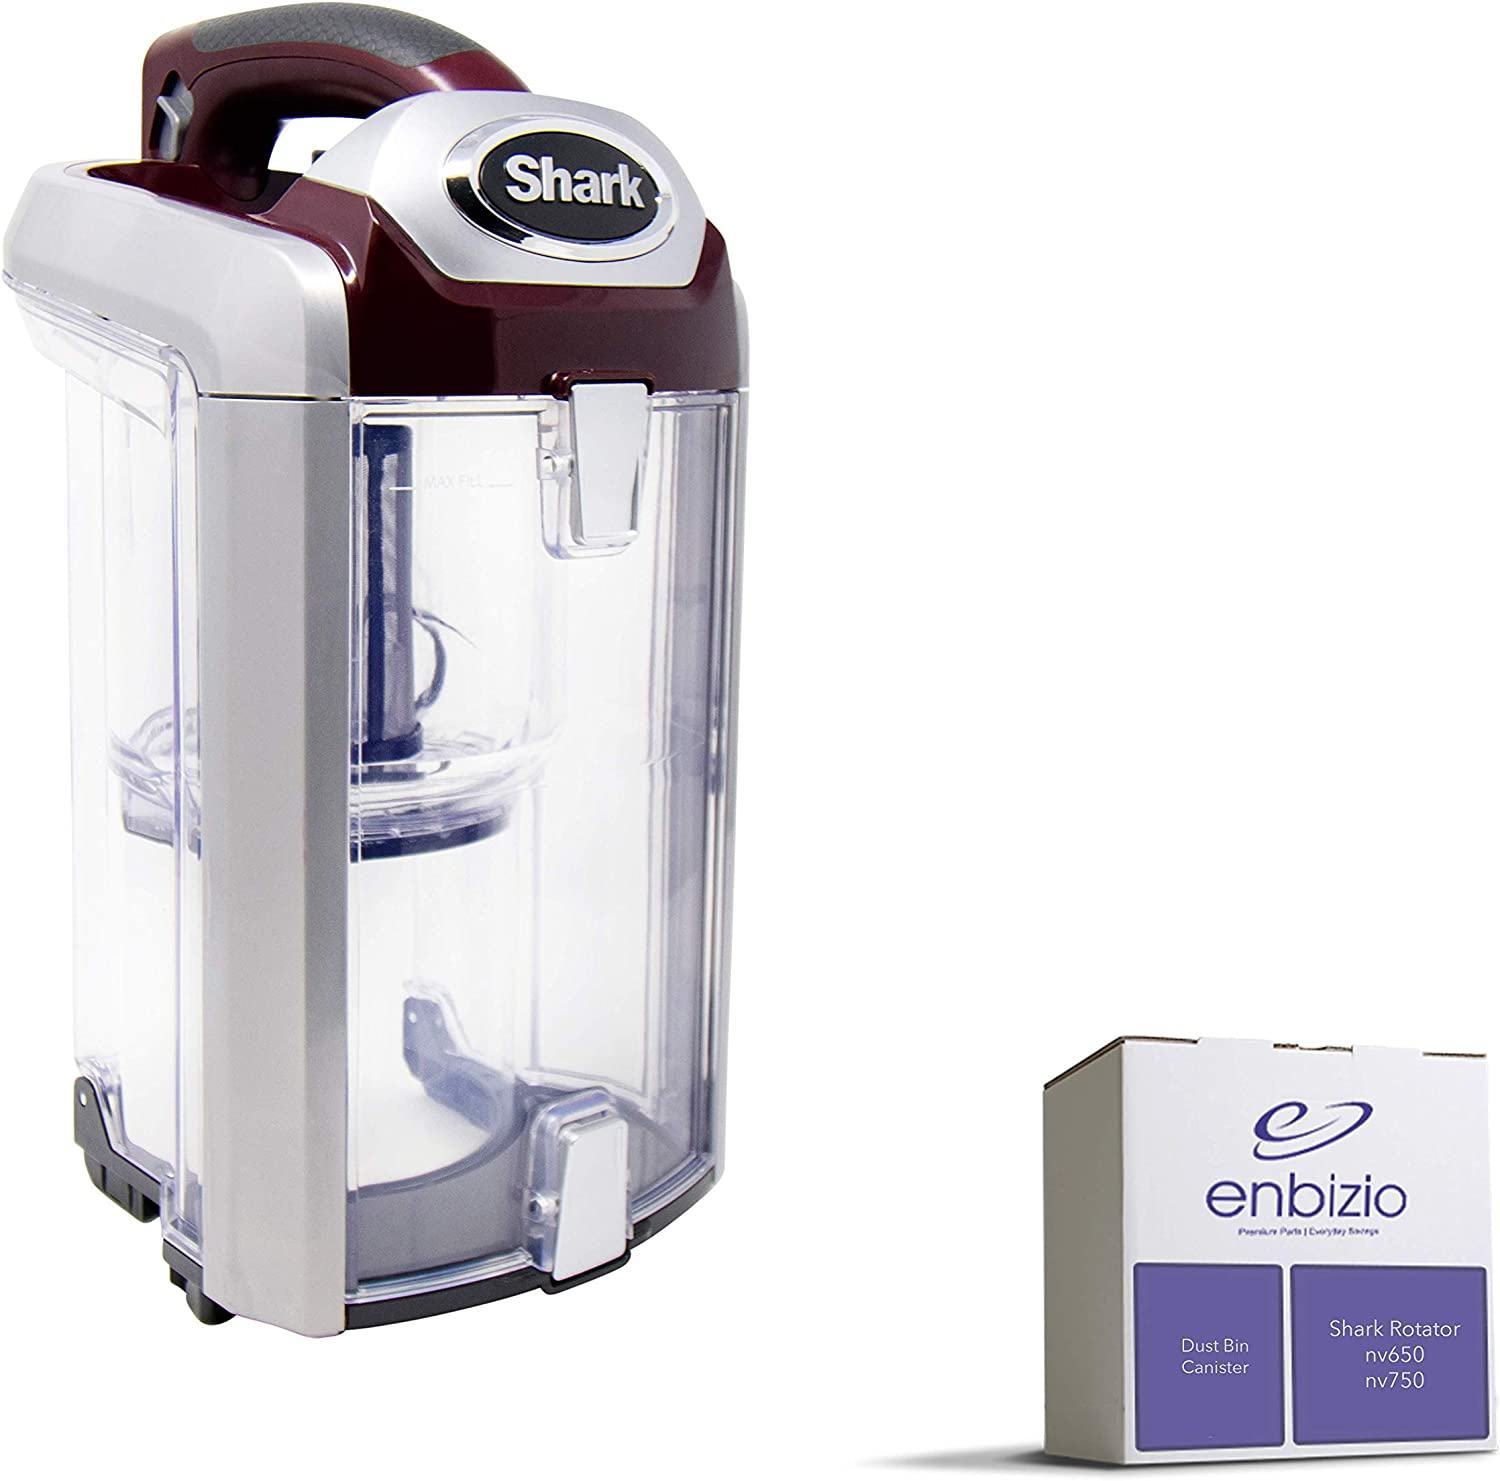 Enbizio Genuine Shark Vacuum Replacement Parts for The Shark Professional Rotator Powered Lift Away Upright Vacuum Nv650 Nv750 - Dust Bin Canister Attachment - Part #1280FC652